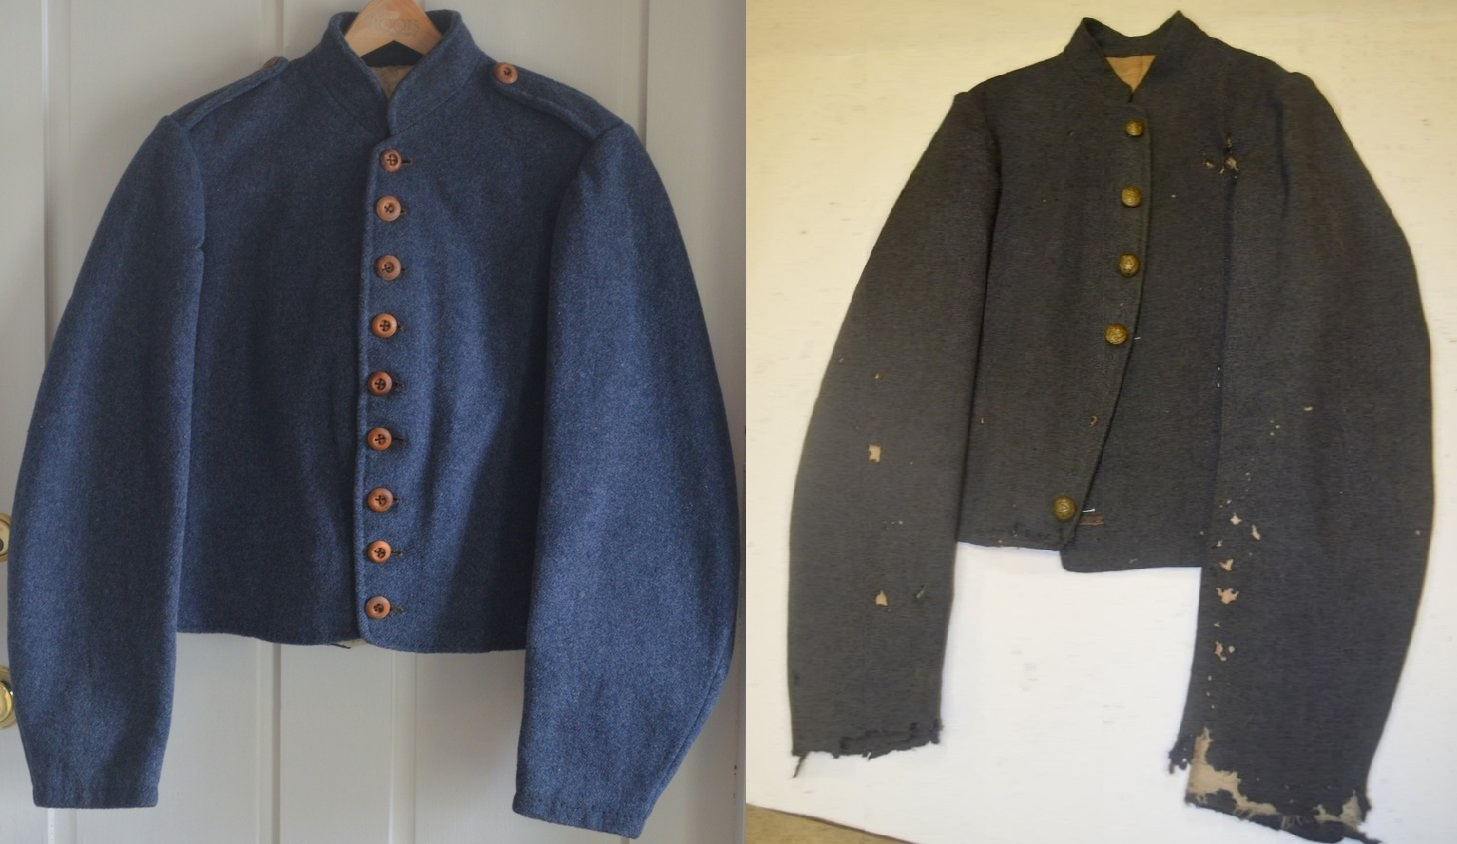 (Left) A typical Richmond jacket that was likely issued to a member of the 2nd Corps between April 30 and May 2, 1864, as the ANV prepared for the upcoming campaign. The jacket has both epaulettes and beltloops and Gibson & Co. wooden buttons. (Right) A Richmond jacket worn by a member of Pegram's Brigade in the autumn of 1863. This jacket has beltloops but the epaulettes were cut off by the wearer.